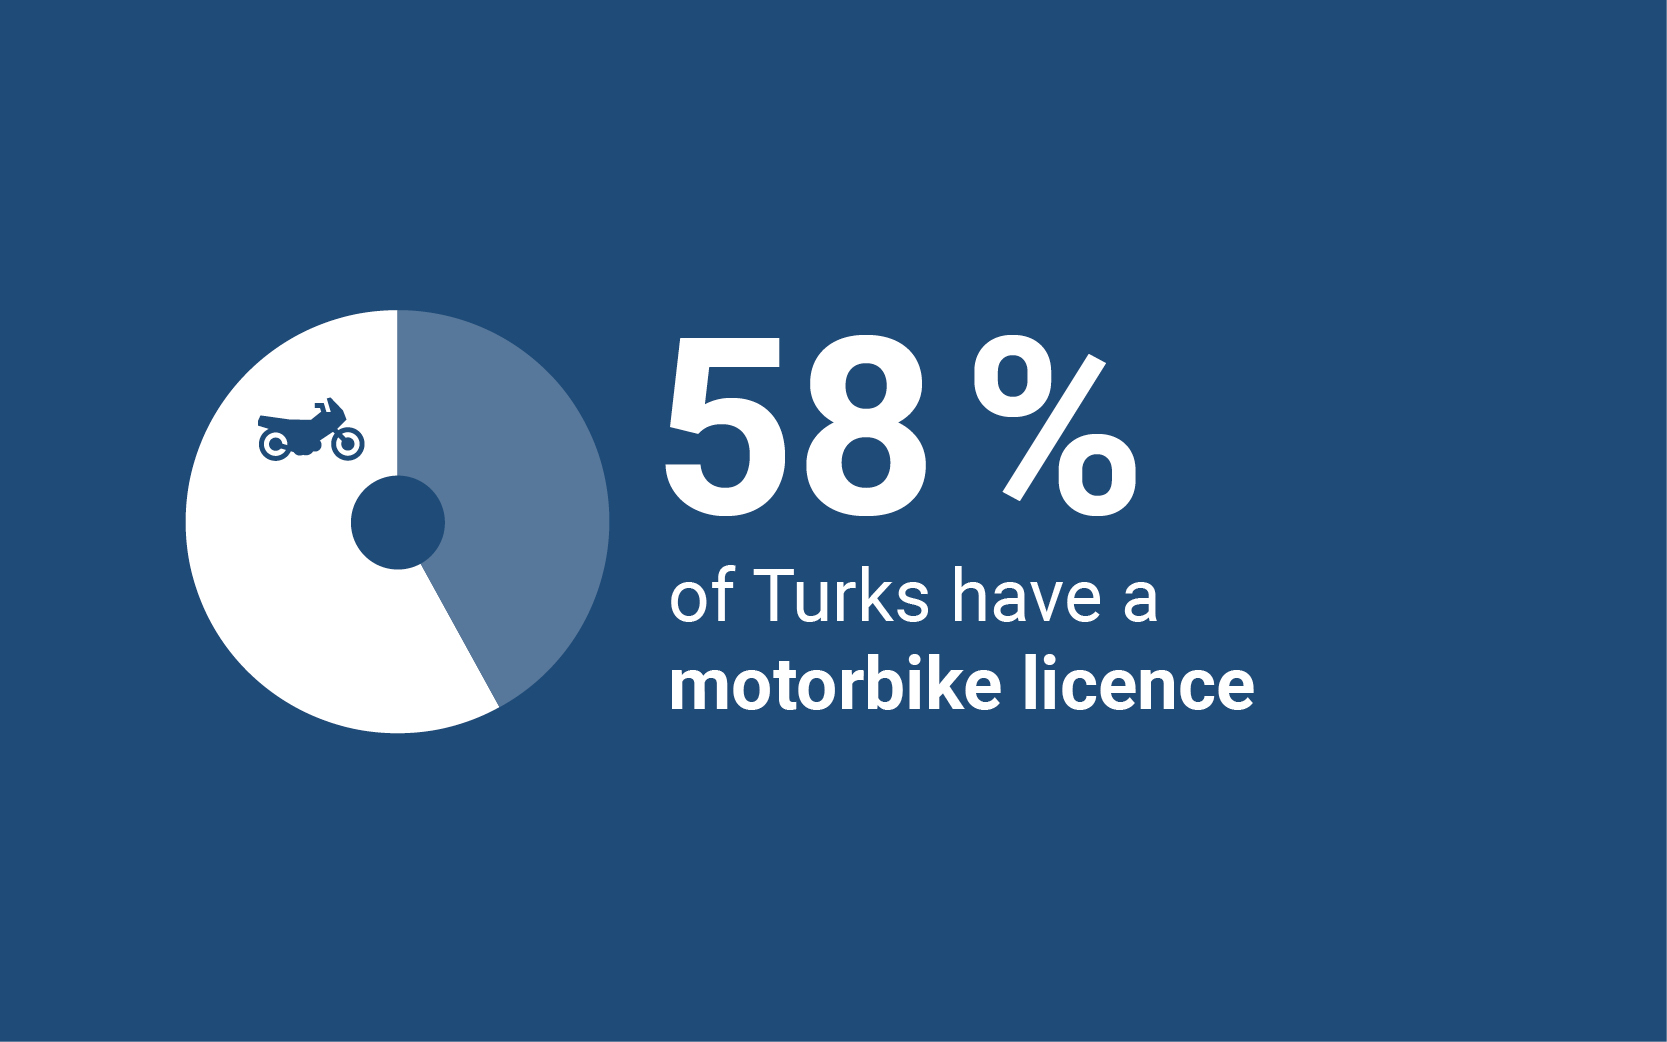 58% of Turks have a motorbike licence